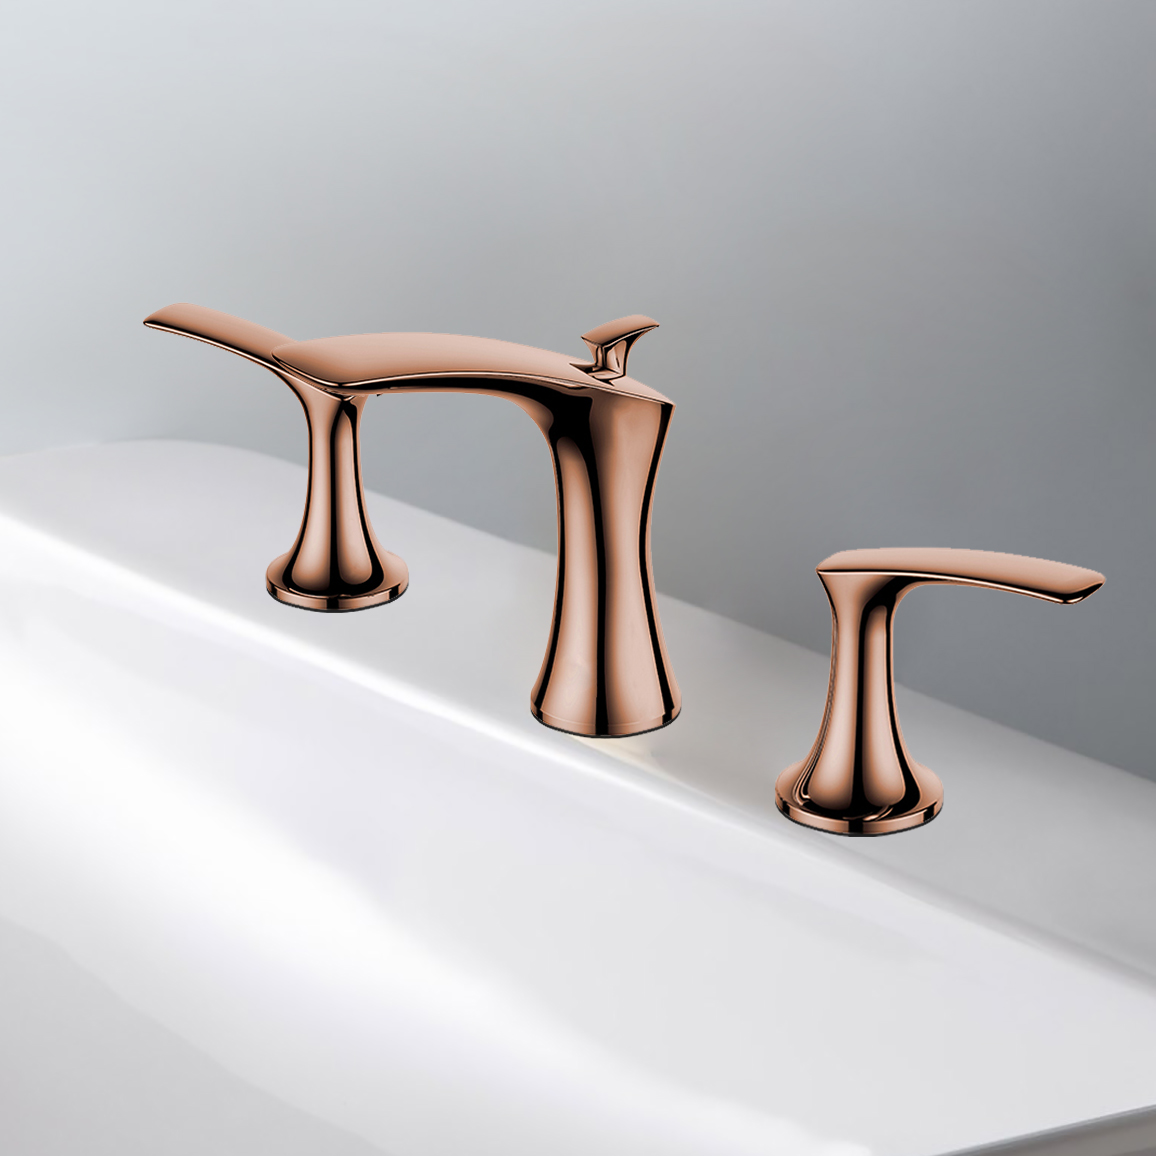 lumina solid brass luxurious 8 inch widespread bathroom faucet in rose gold finish